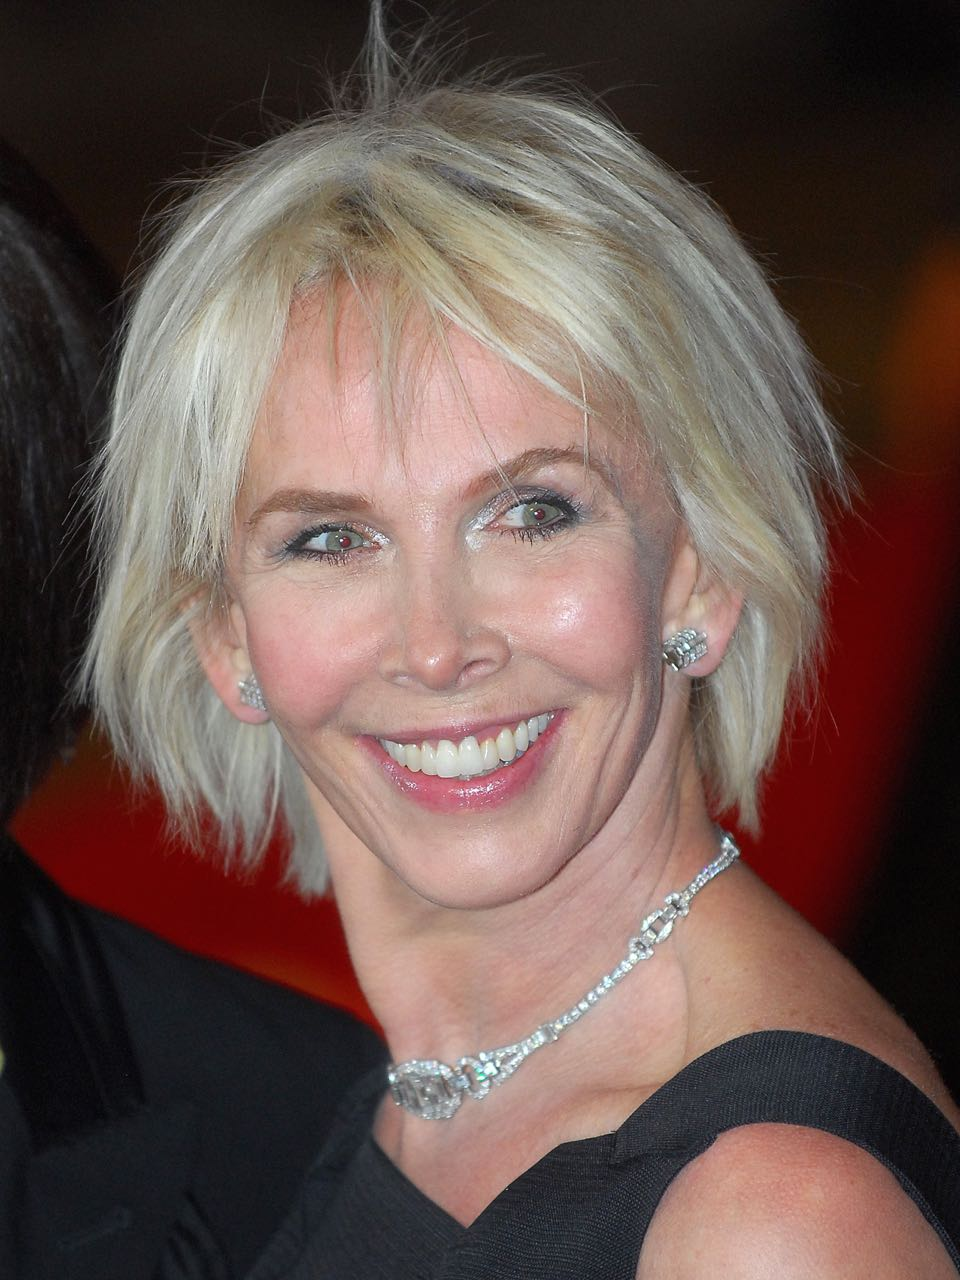 Discussion on this topic: Kaye Marie Talise, trudie-styler-born-1954/